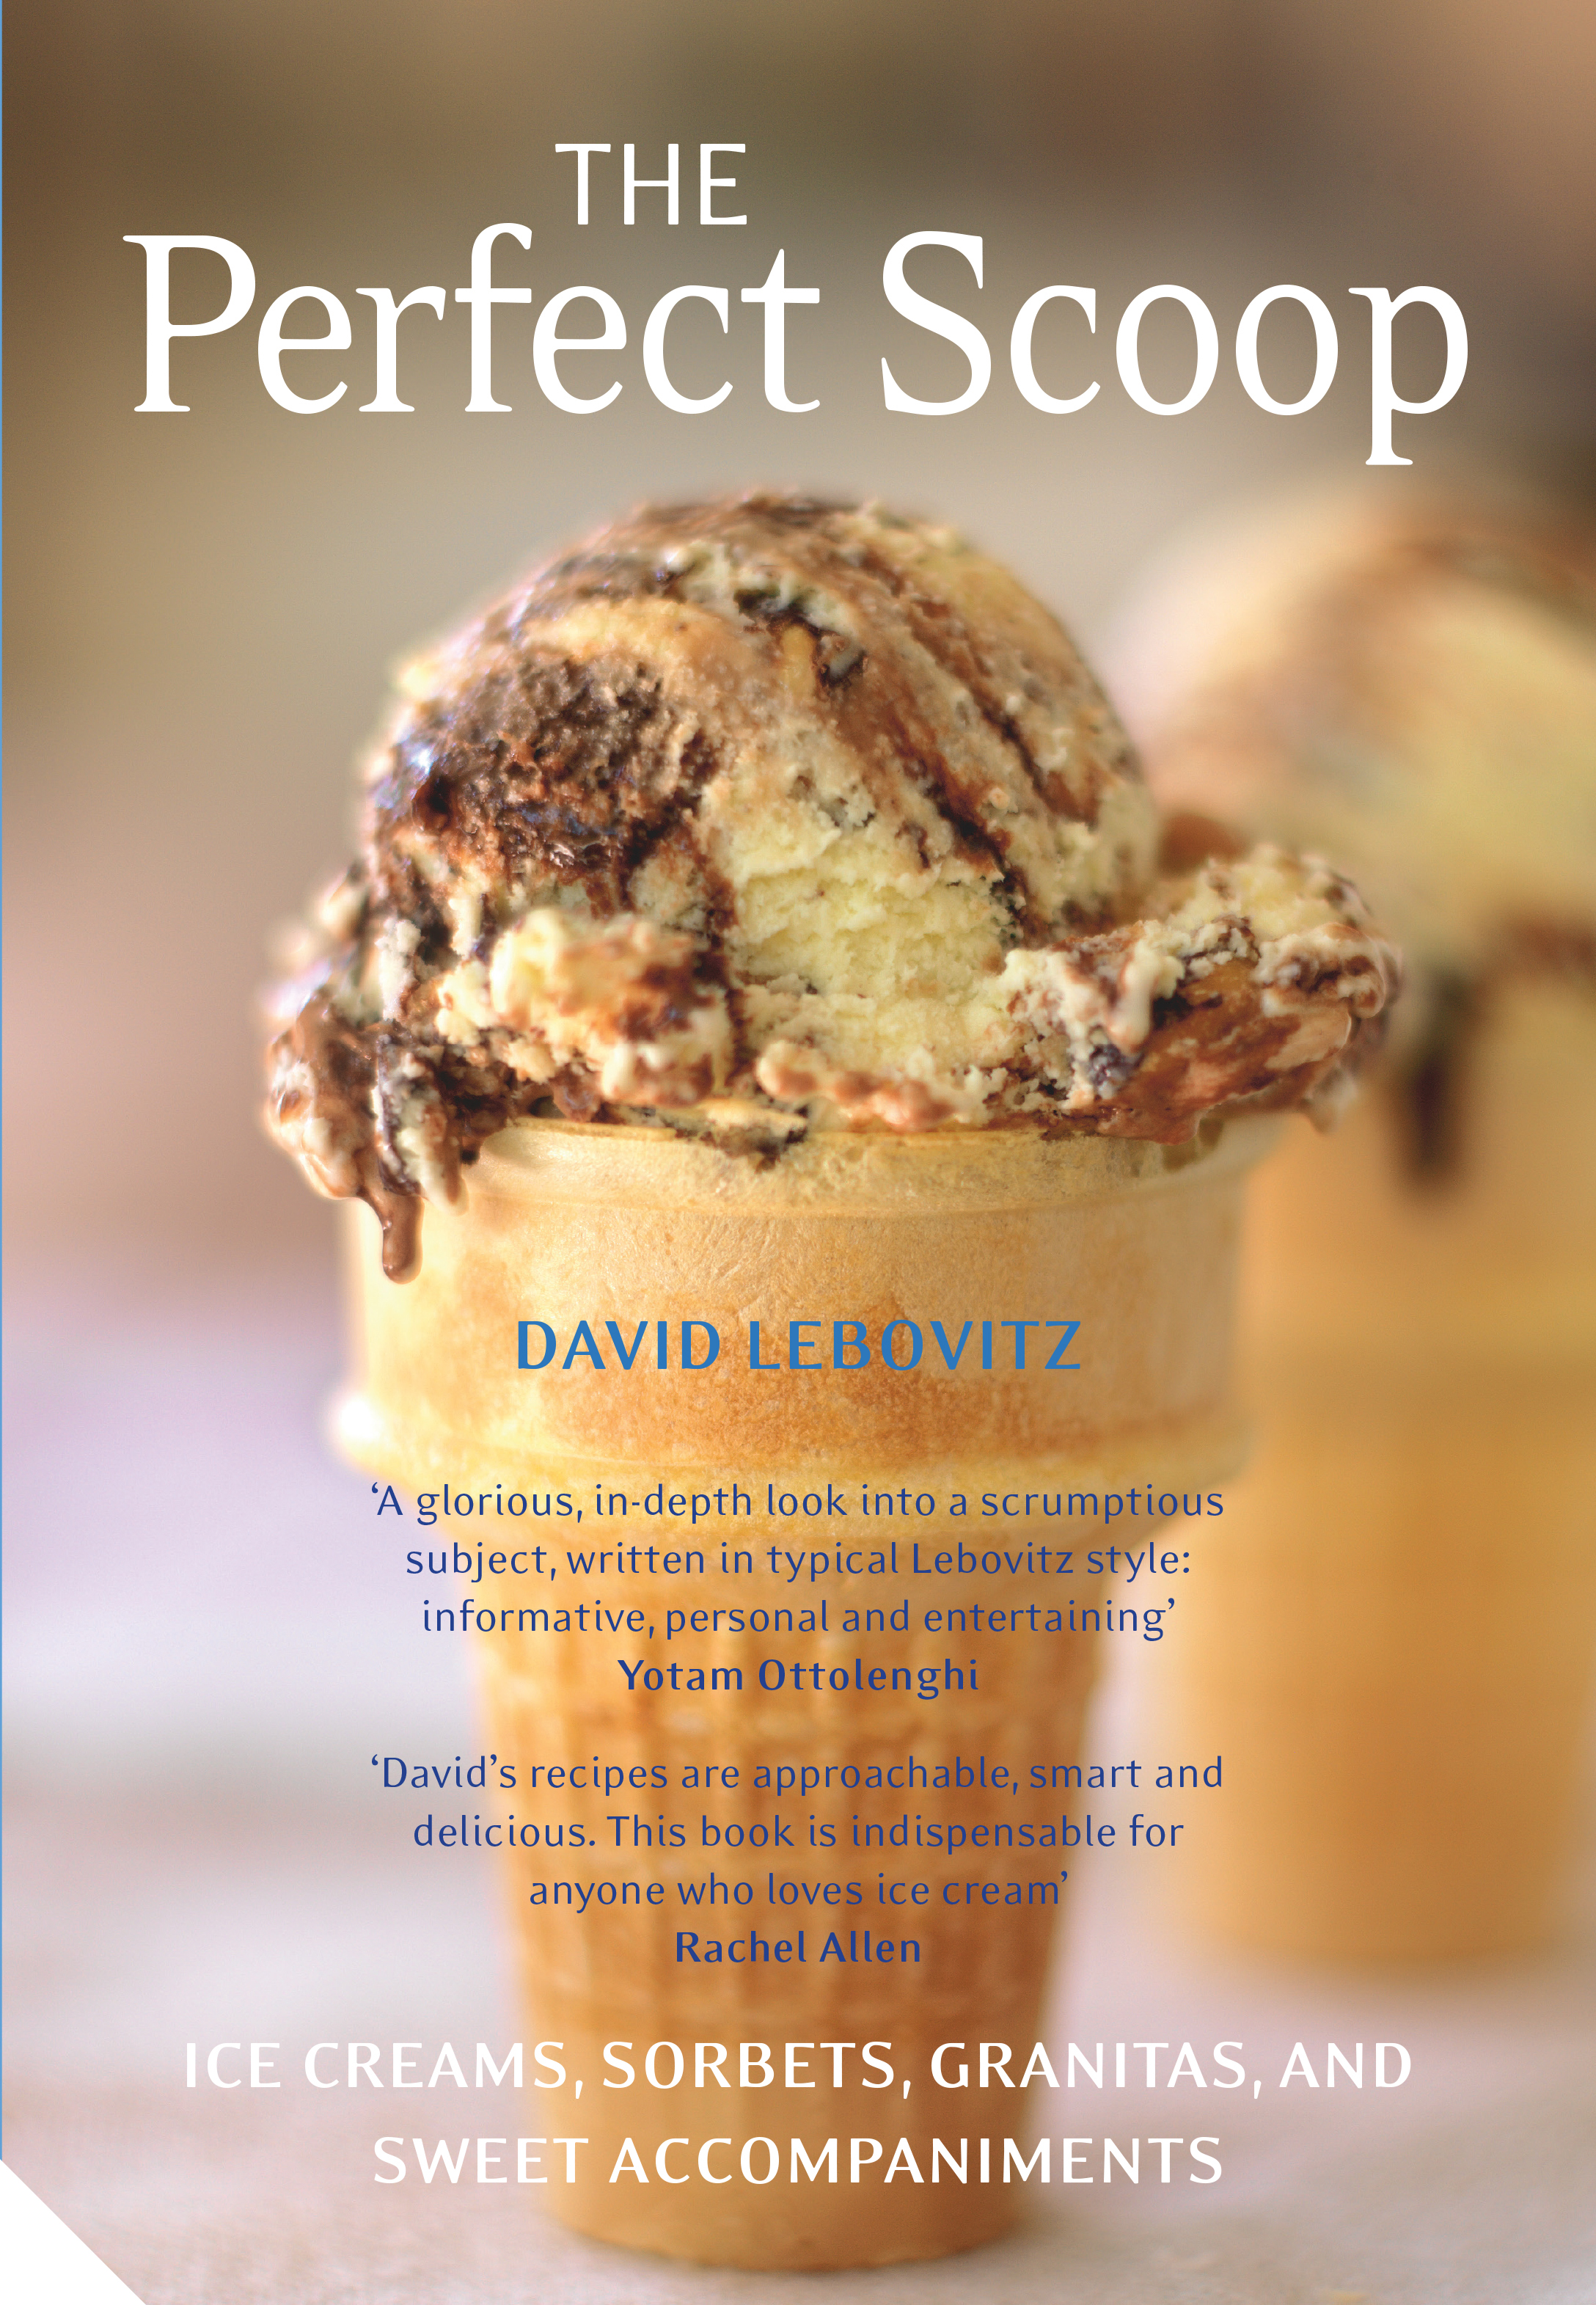 the perfect scoop david lebovitz pdf download